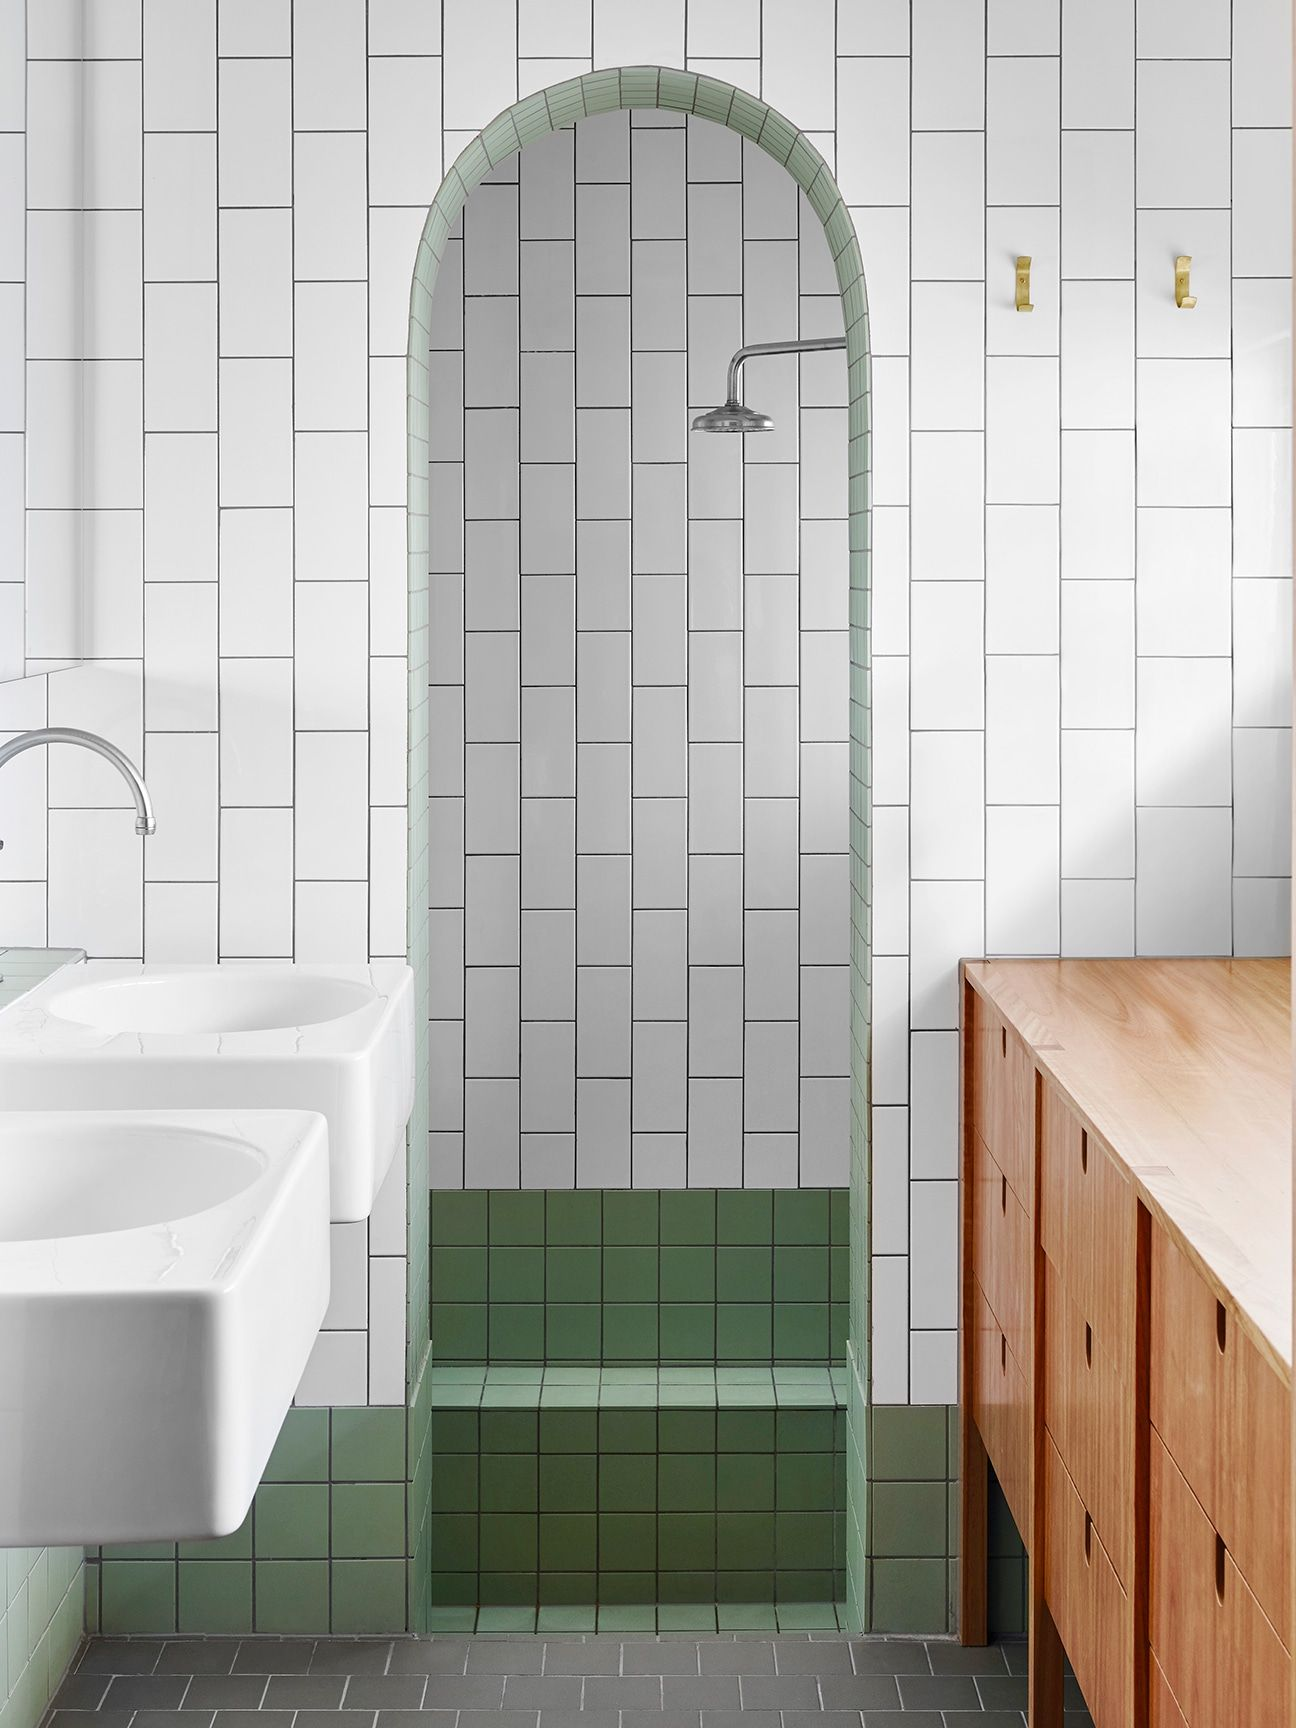 Instead Of Glass Shower Doors Try An Archway In A Small Bathroom Shower Doors Glass Shower Doors Big Bathrooms